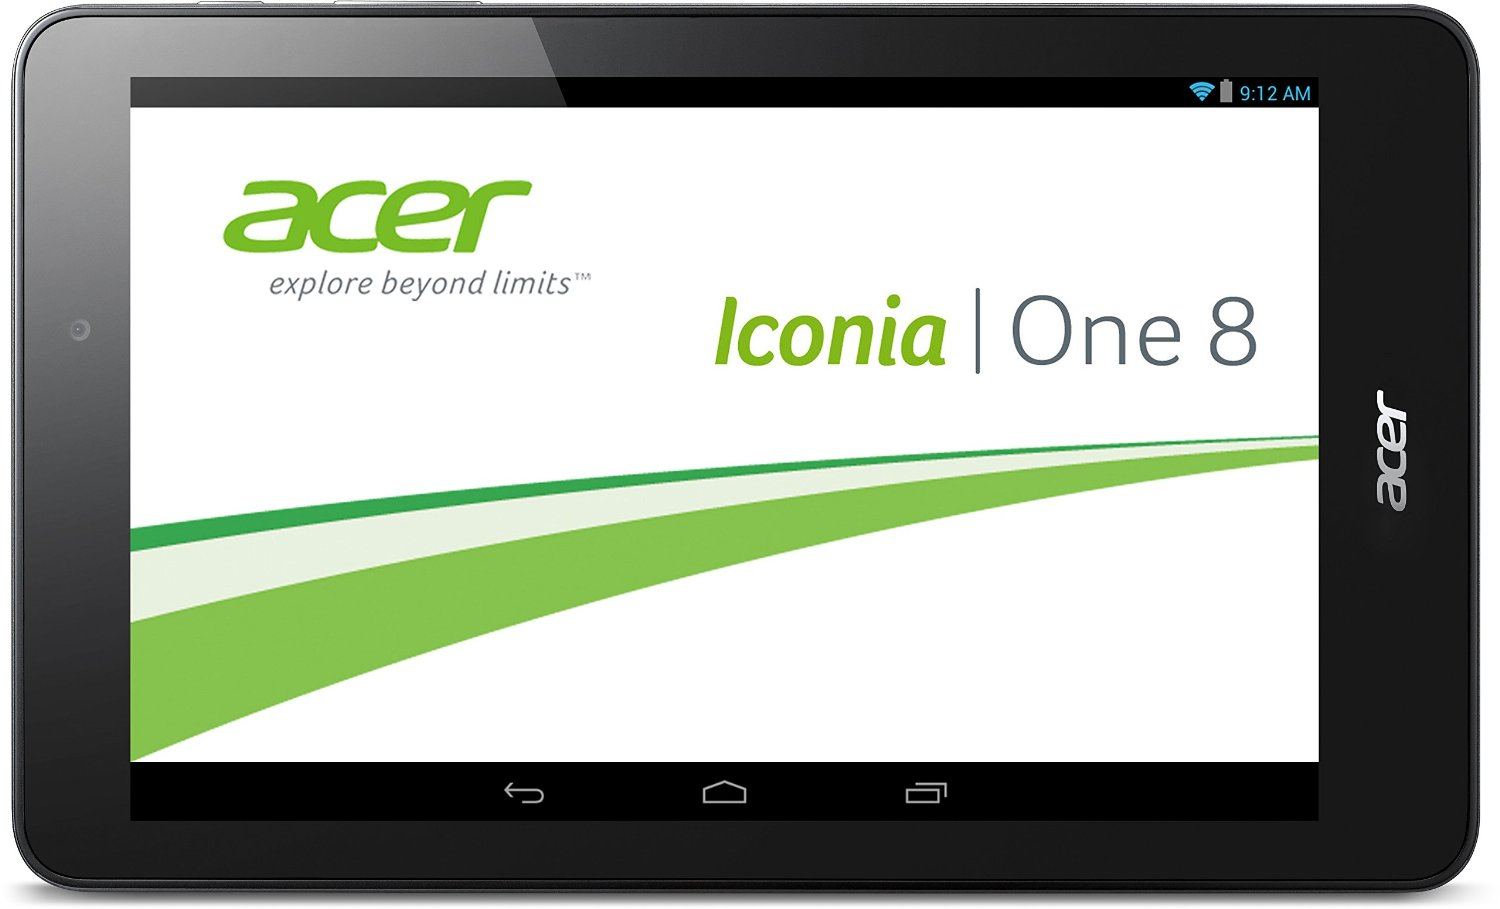 Acer Iconia One 8 (B1-810) tablet